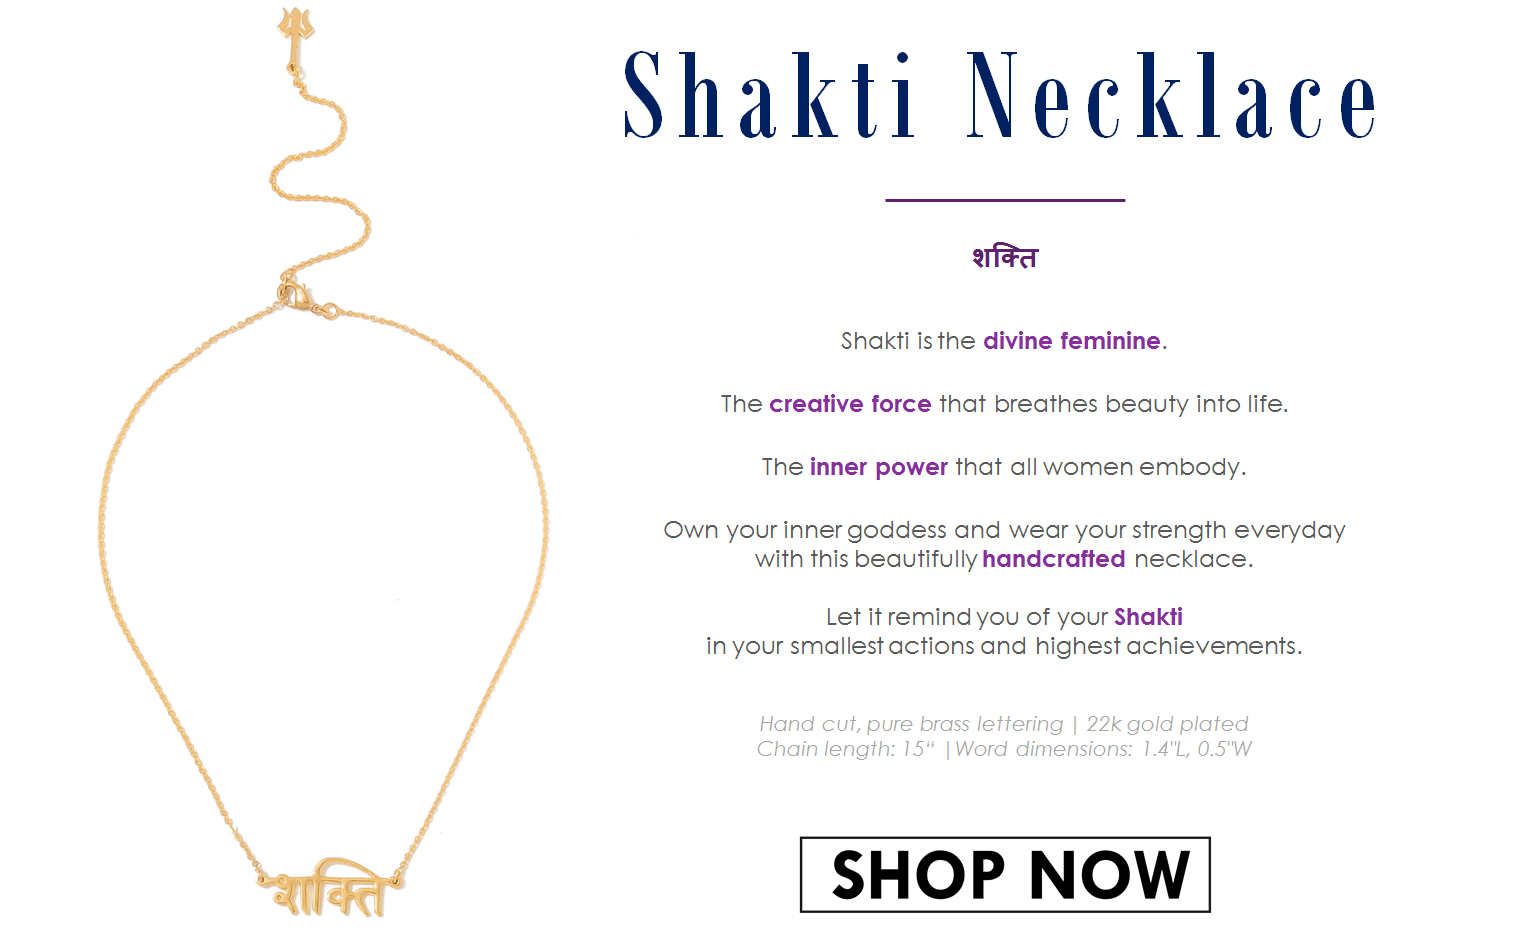 Shakti Necklace - Jewellery Handcrafted in India - Designed by Parvati Villa, Lifestyle Boutique in Bombay, India